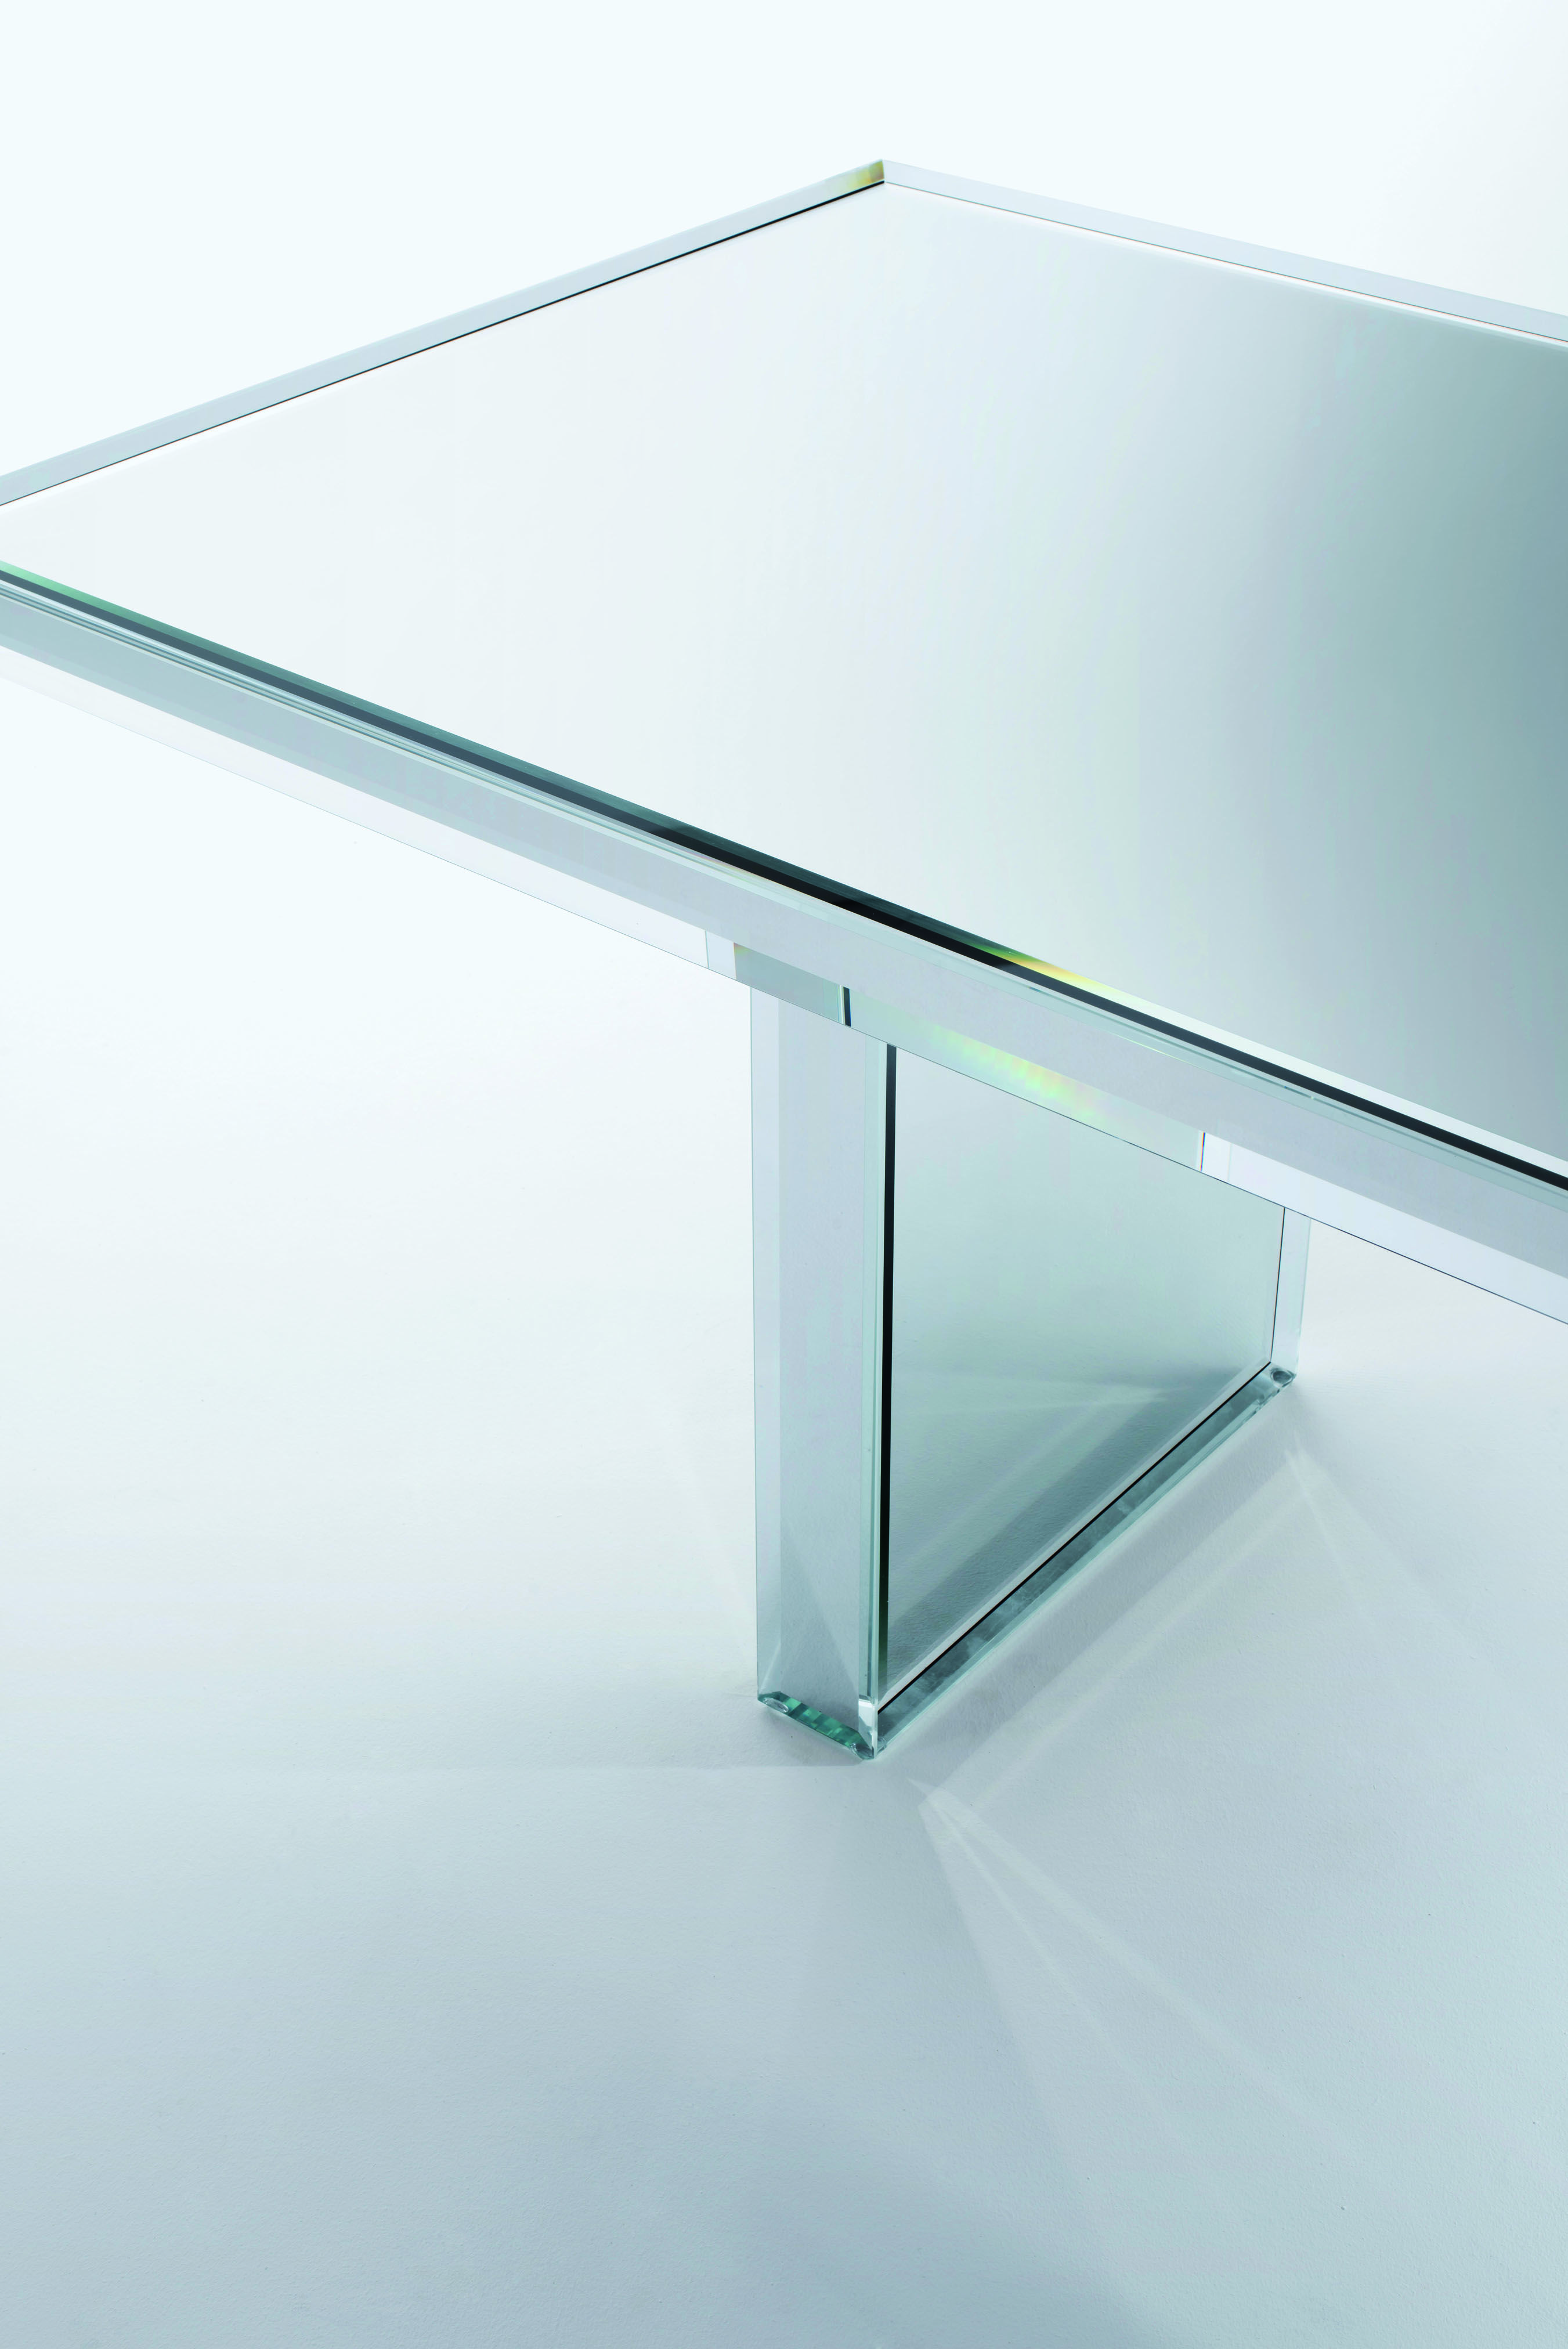 Prism Mirror Table Is A Remarkable Project Developed By The Tokyo